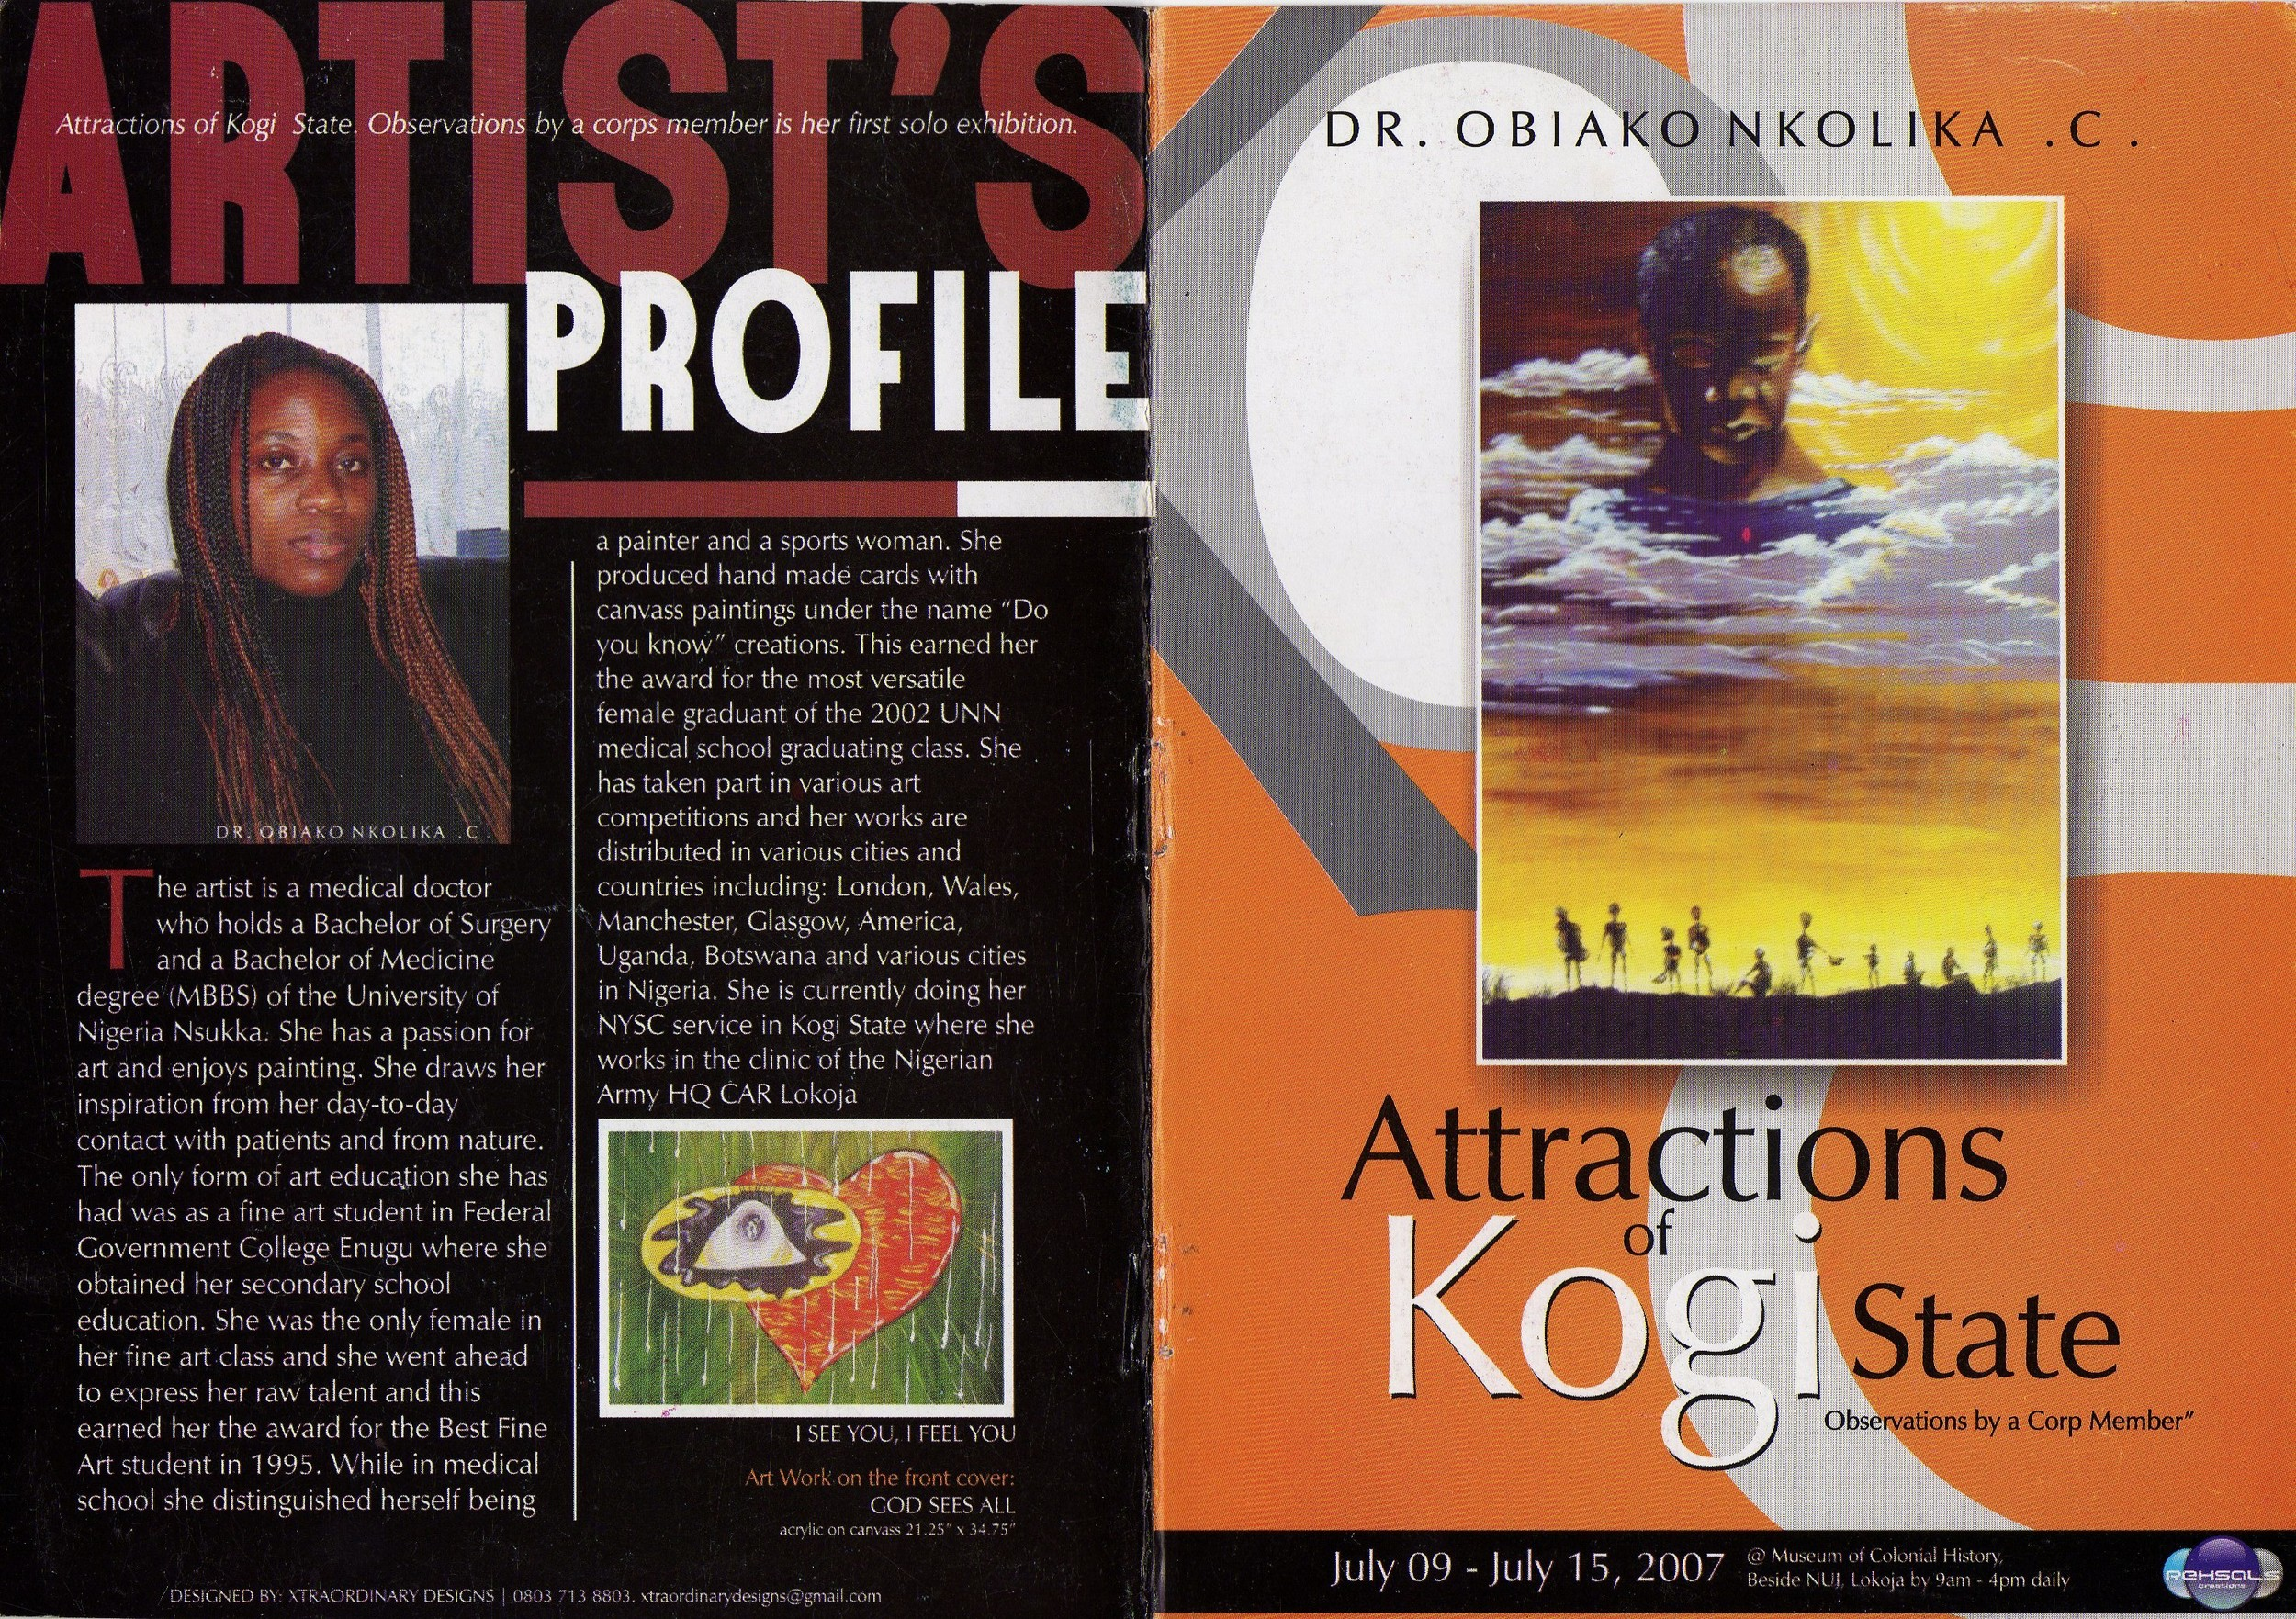 Art Exhibition Brochure with Artists Profile